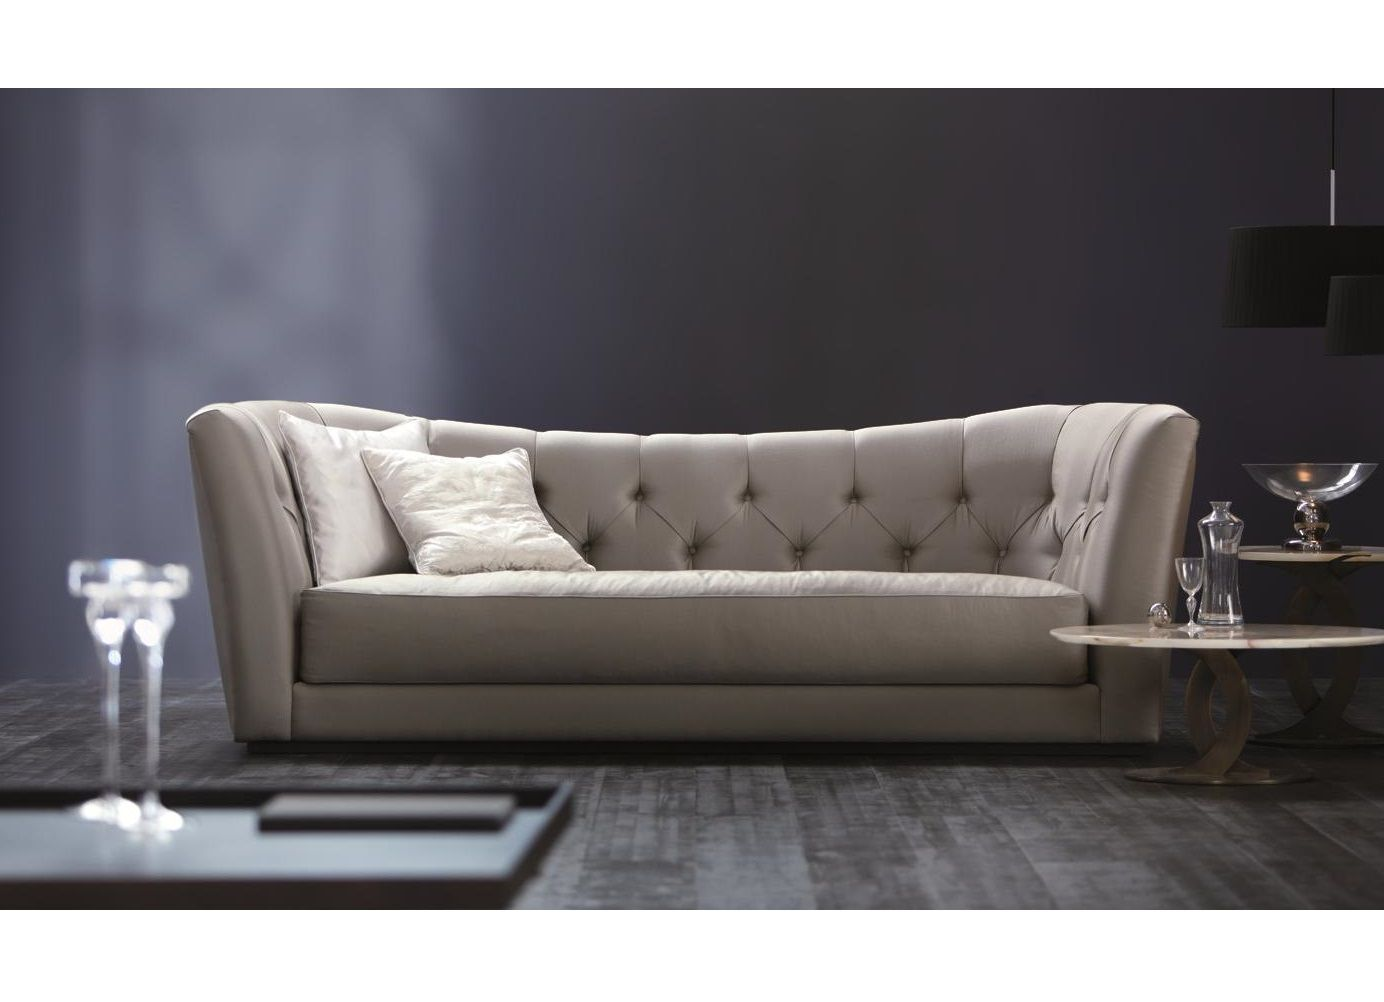 emma tufted sofa outdoor cover australia butterfly 3 seater modern